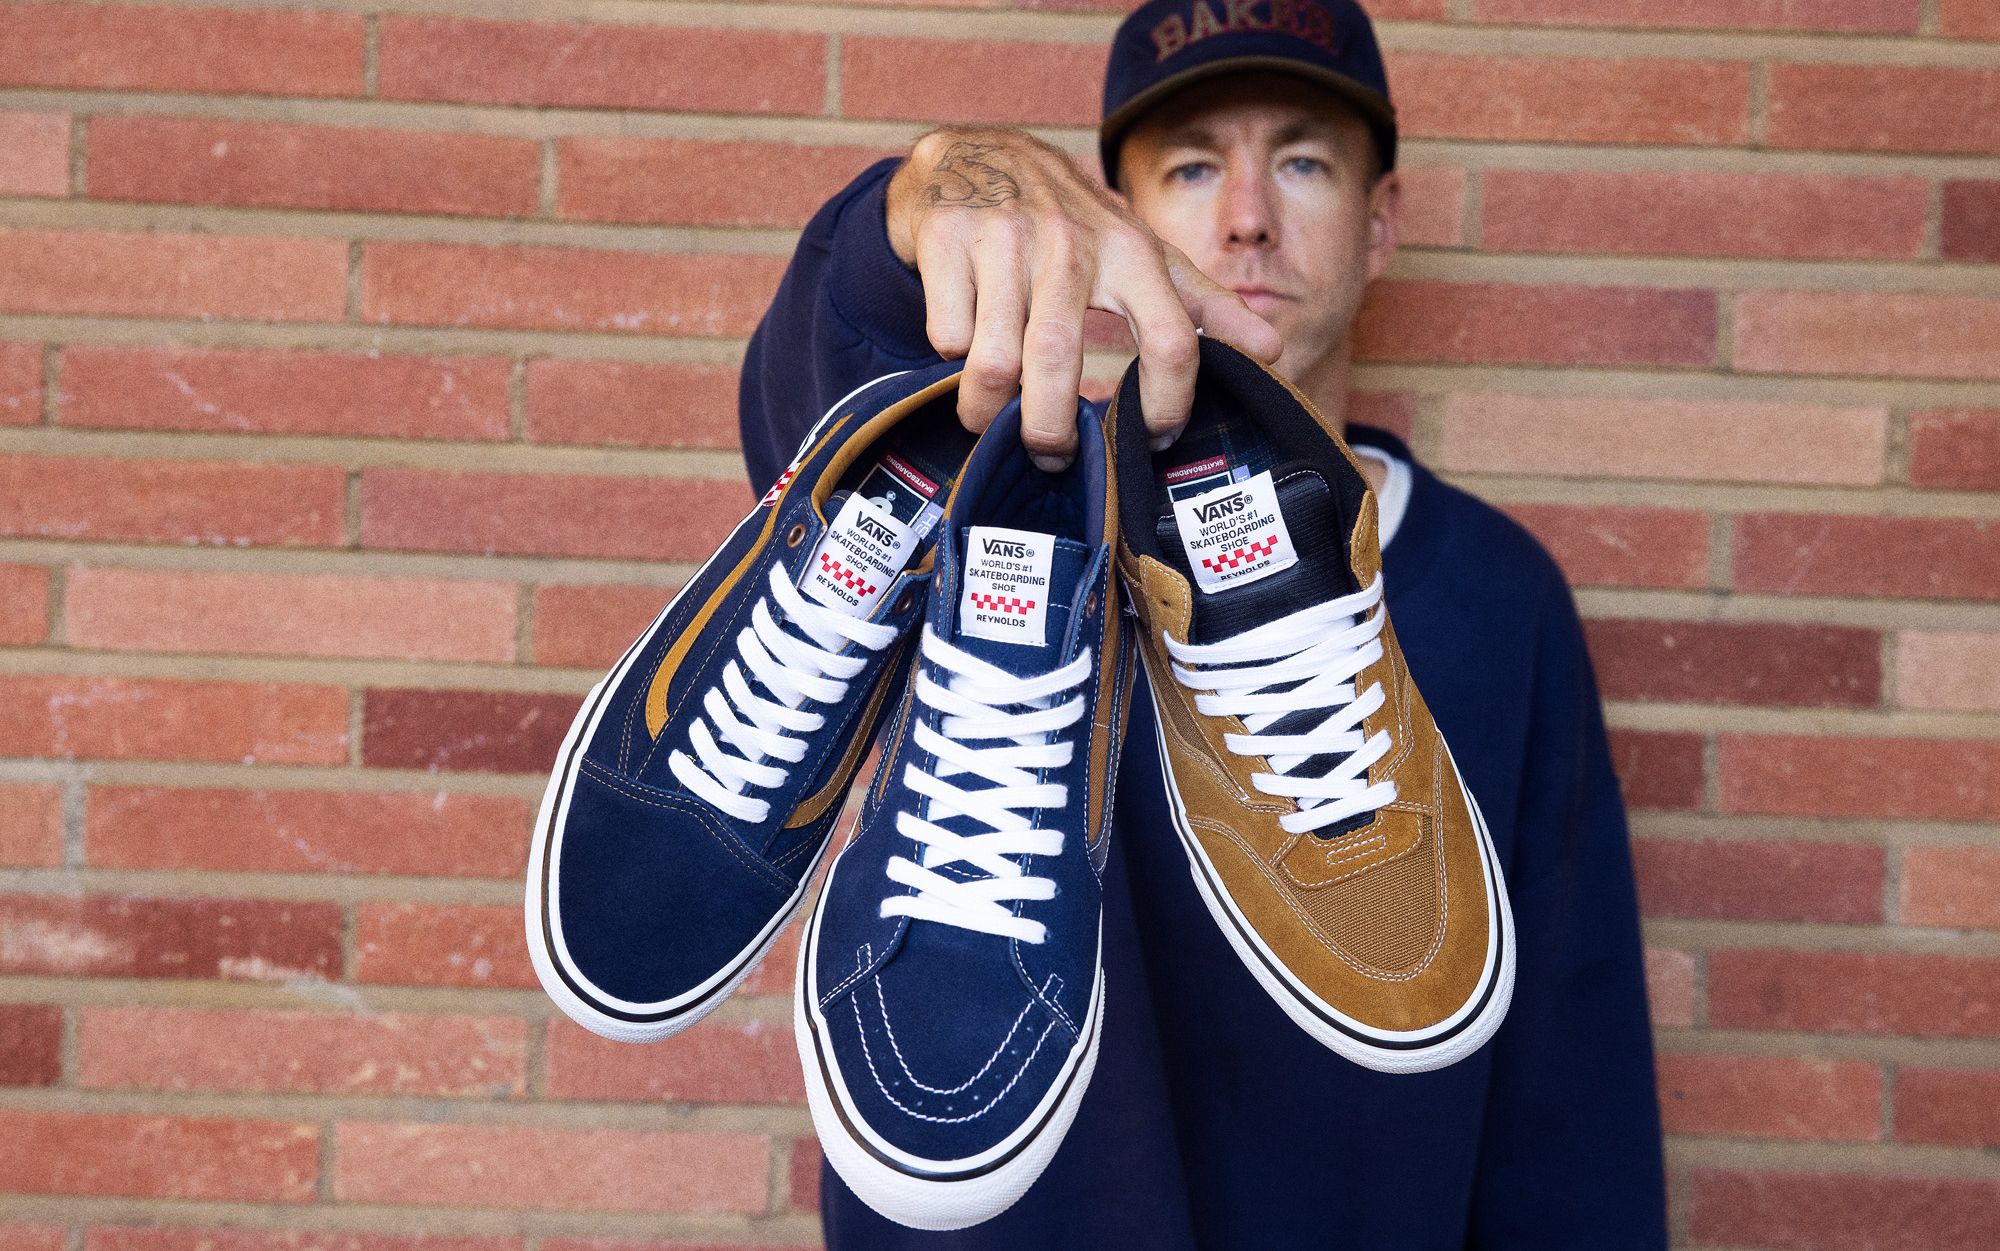 VANS - SKATE CLASSICS ANDREW REYNOLDS COLLECTION